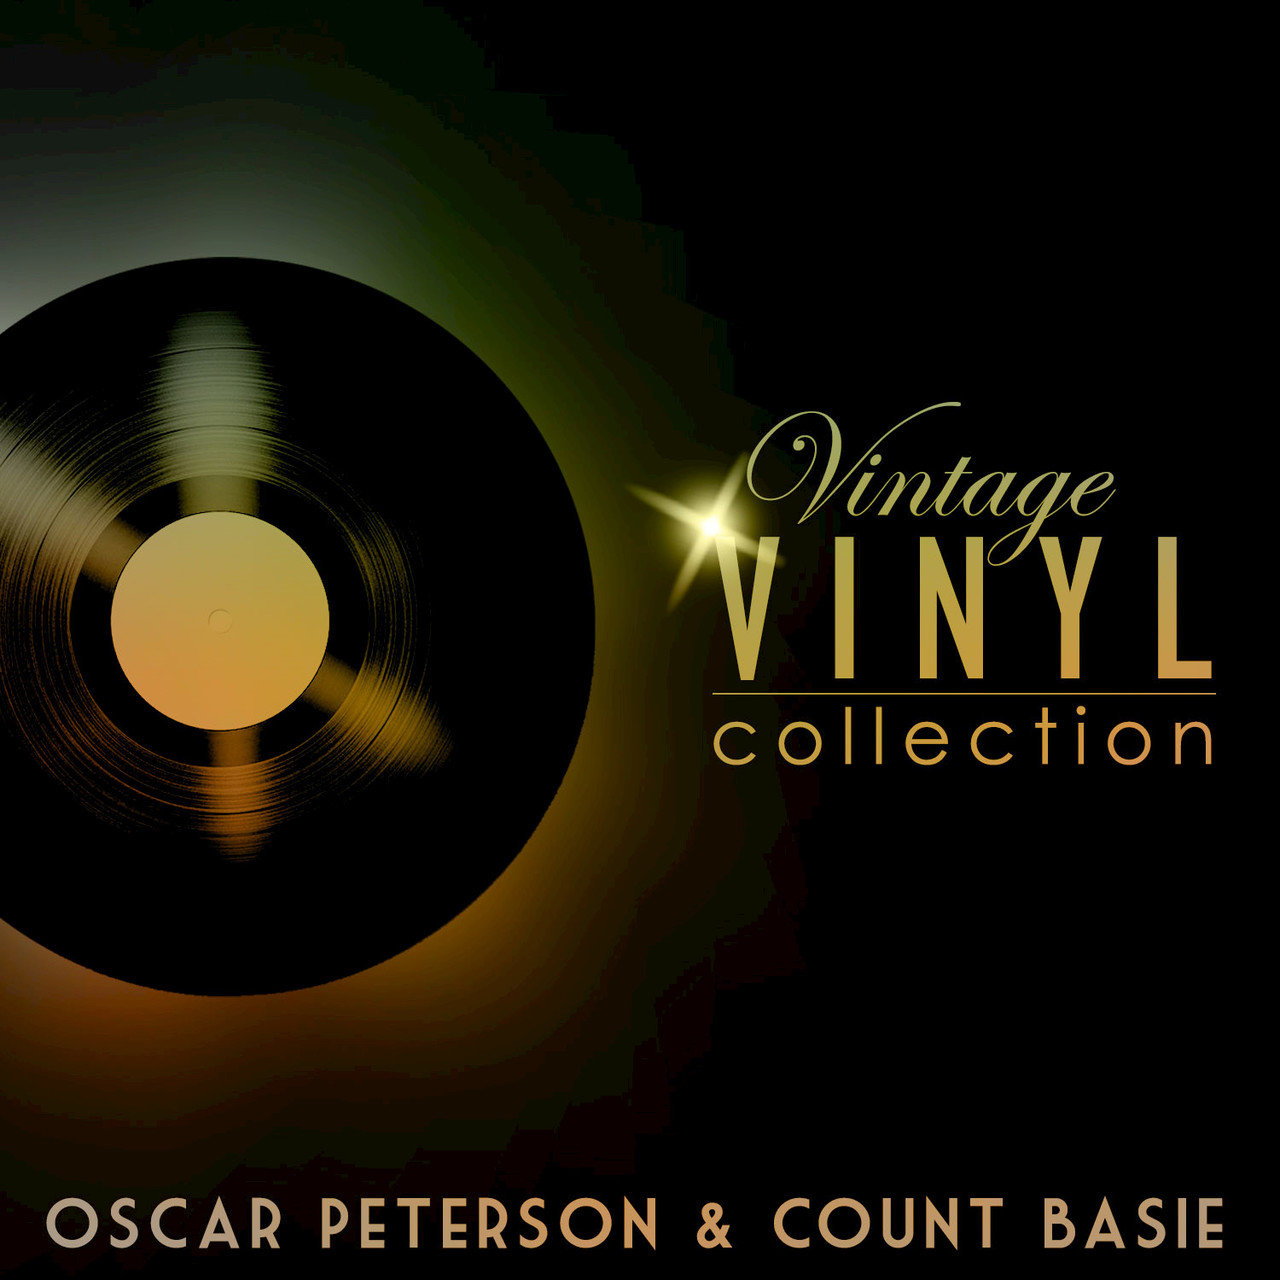 Vintage Vinyl Collection - Oscar Peterson and Count Basie